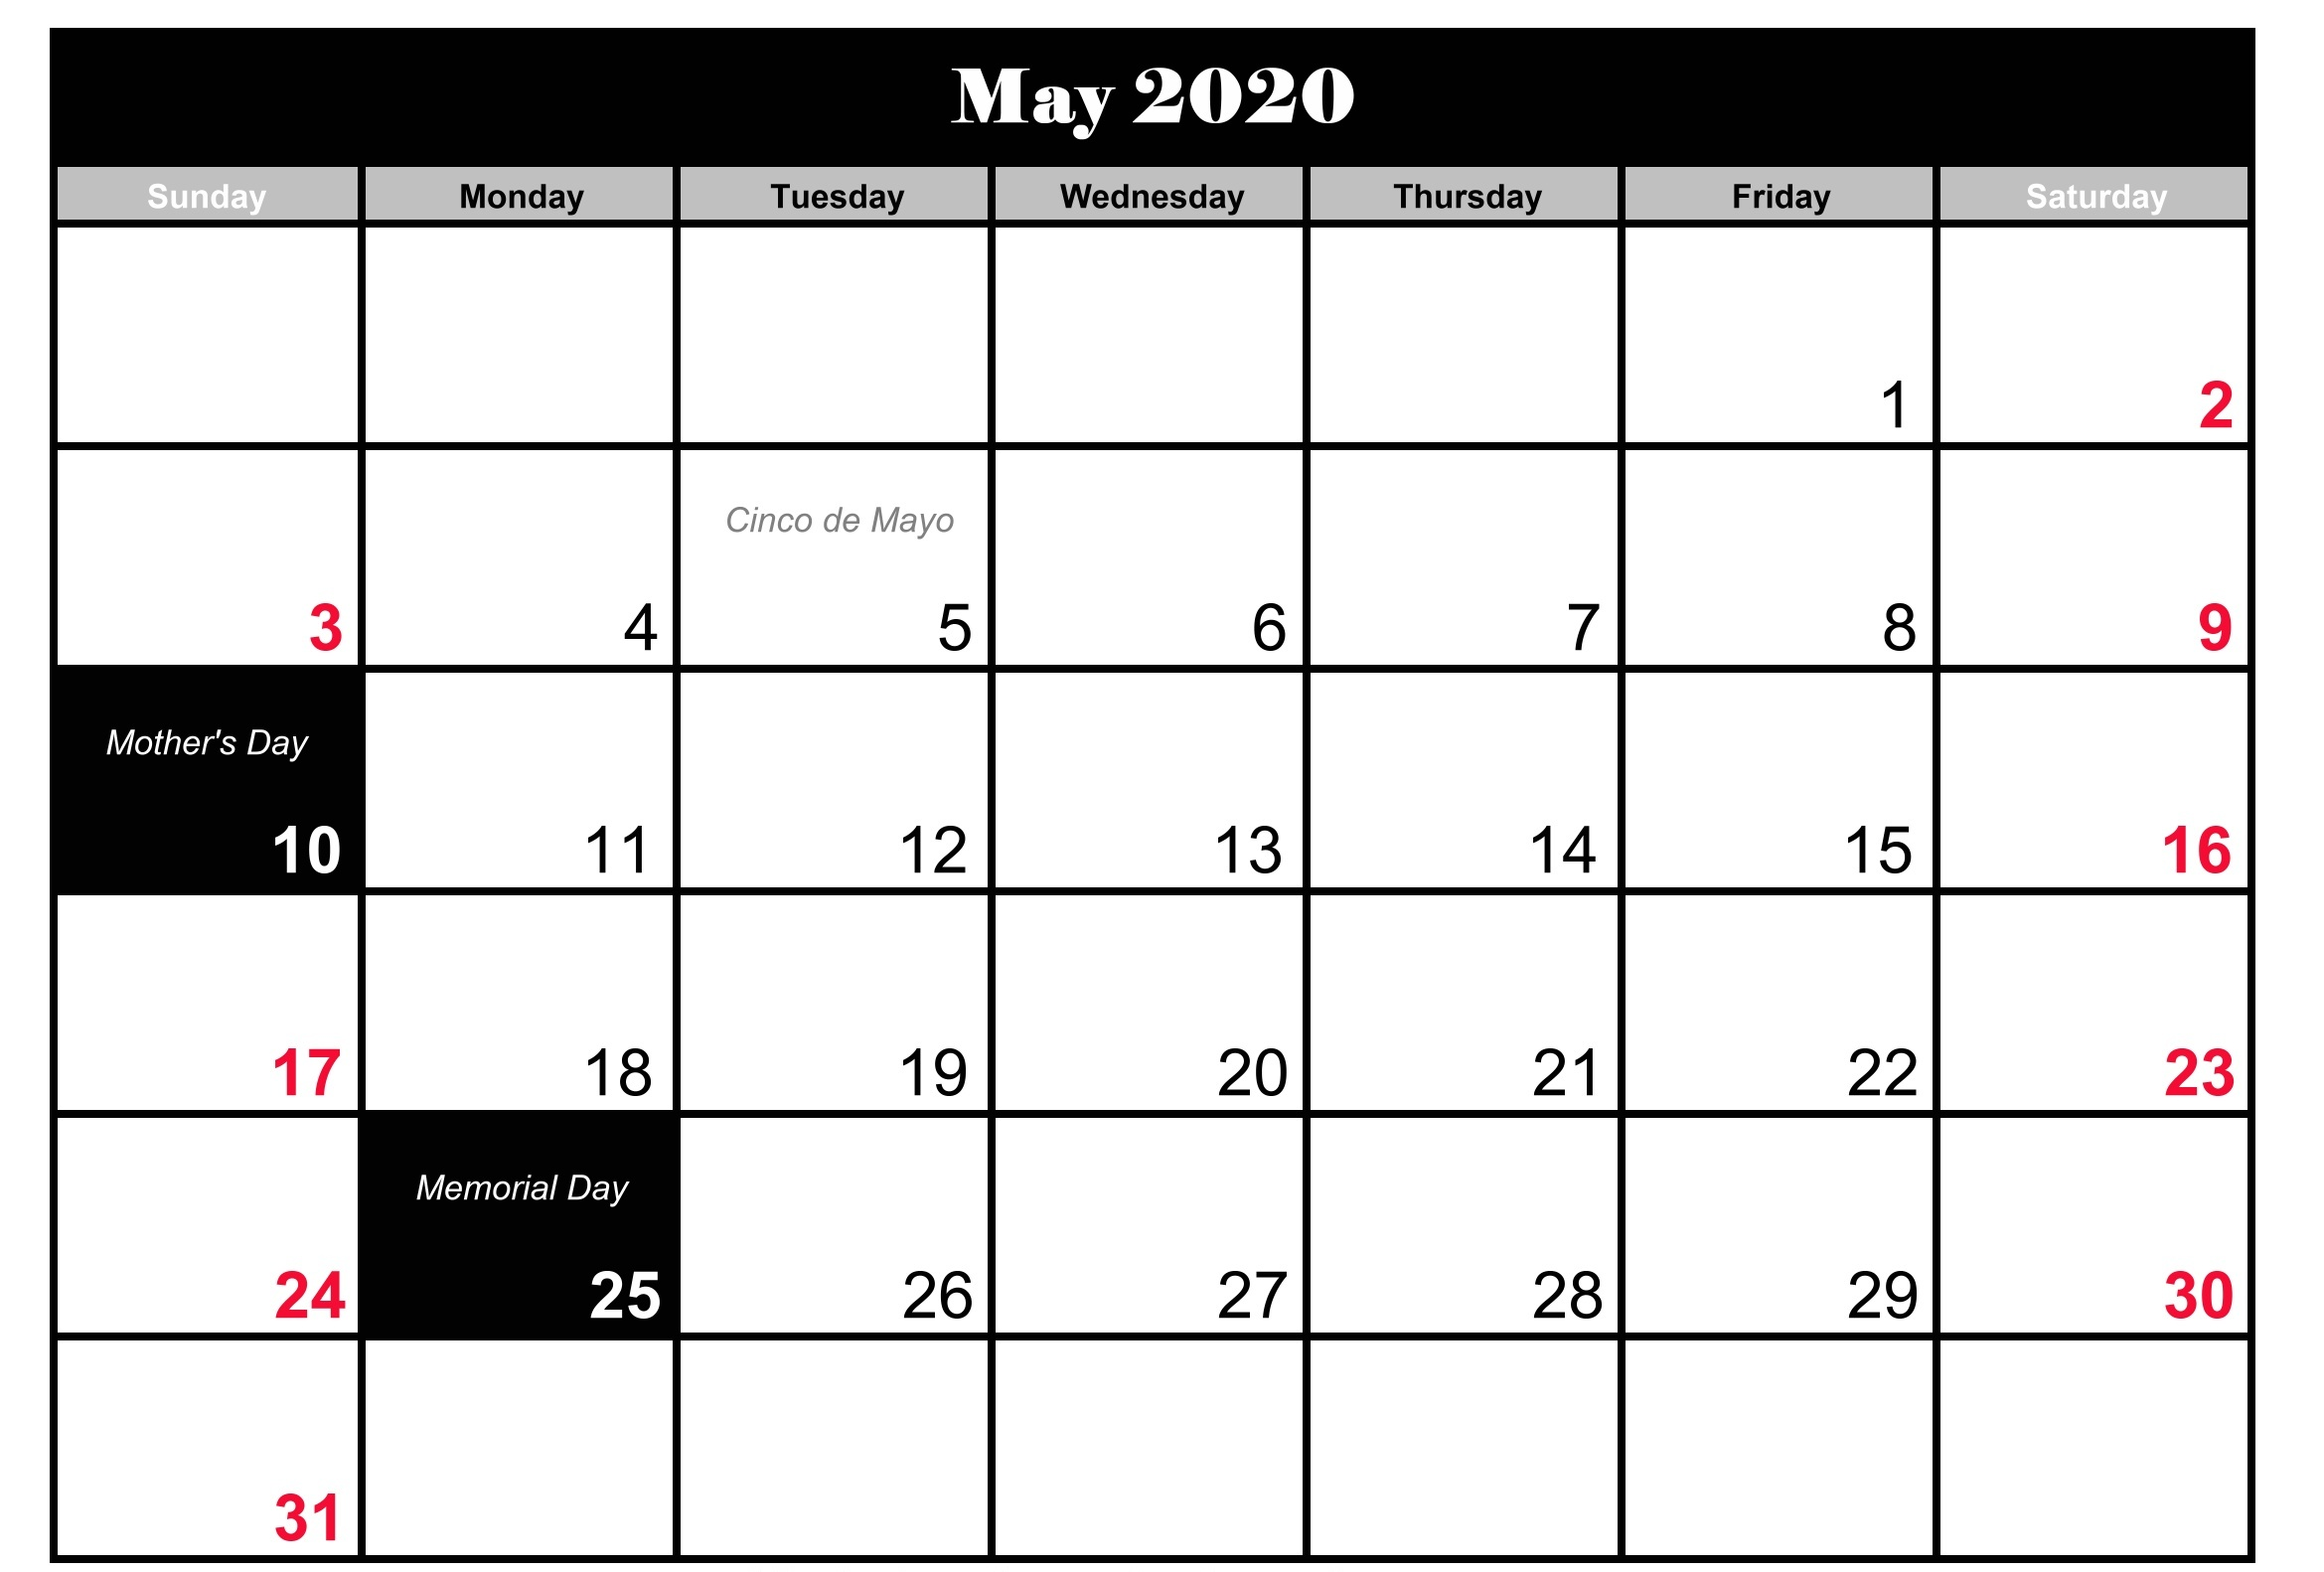 2020 May Calendar with Holidays